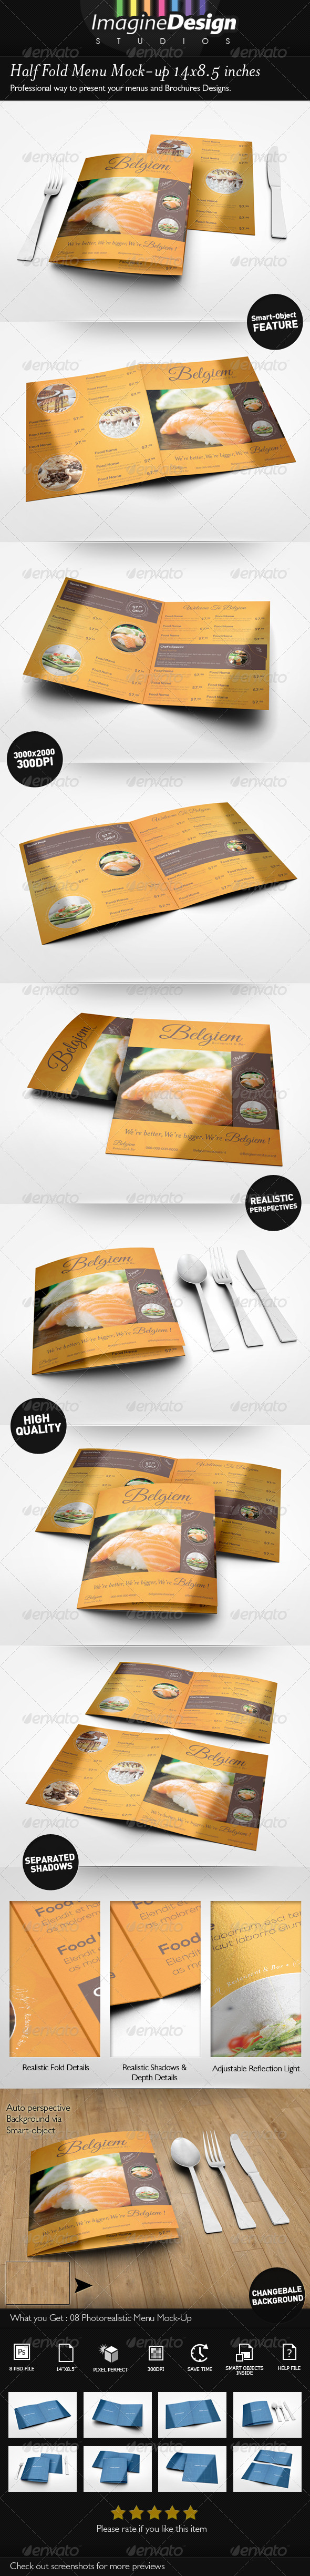 GraphicRiver Half Fold Menu Mock-up 14x8.5 inches 7199155